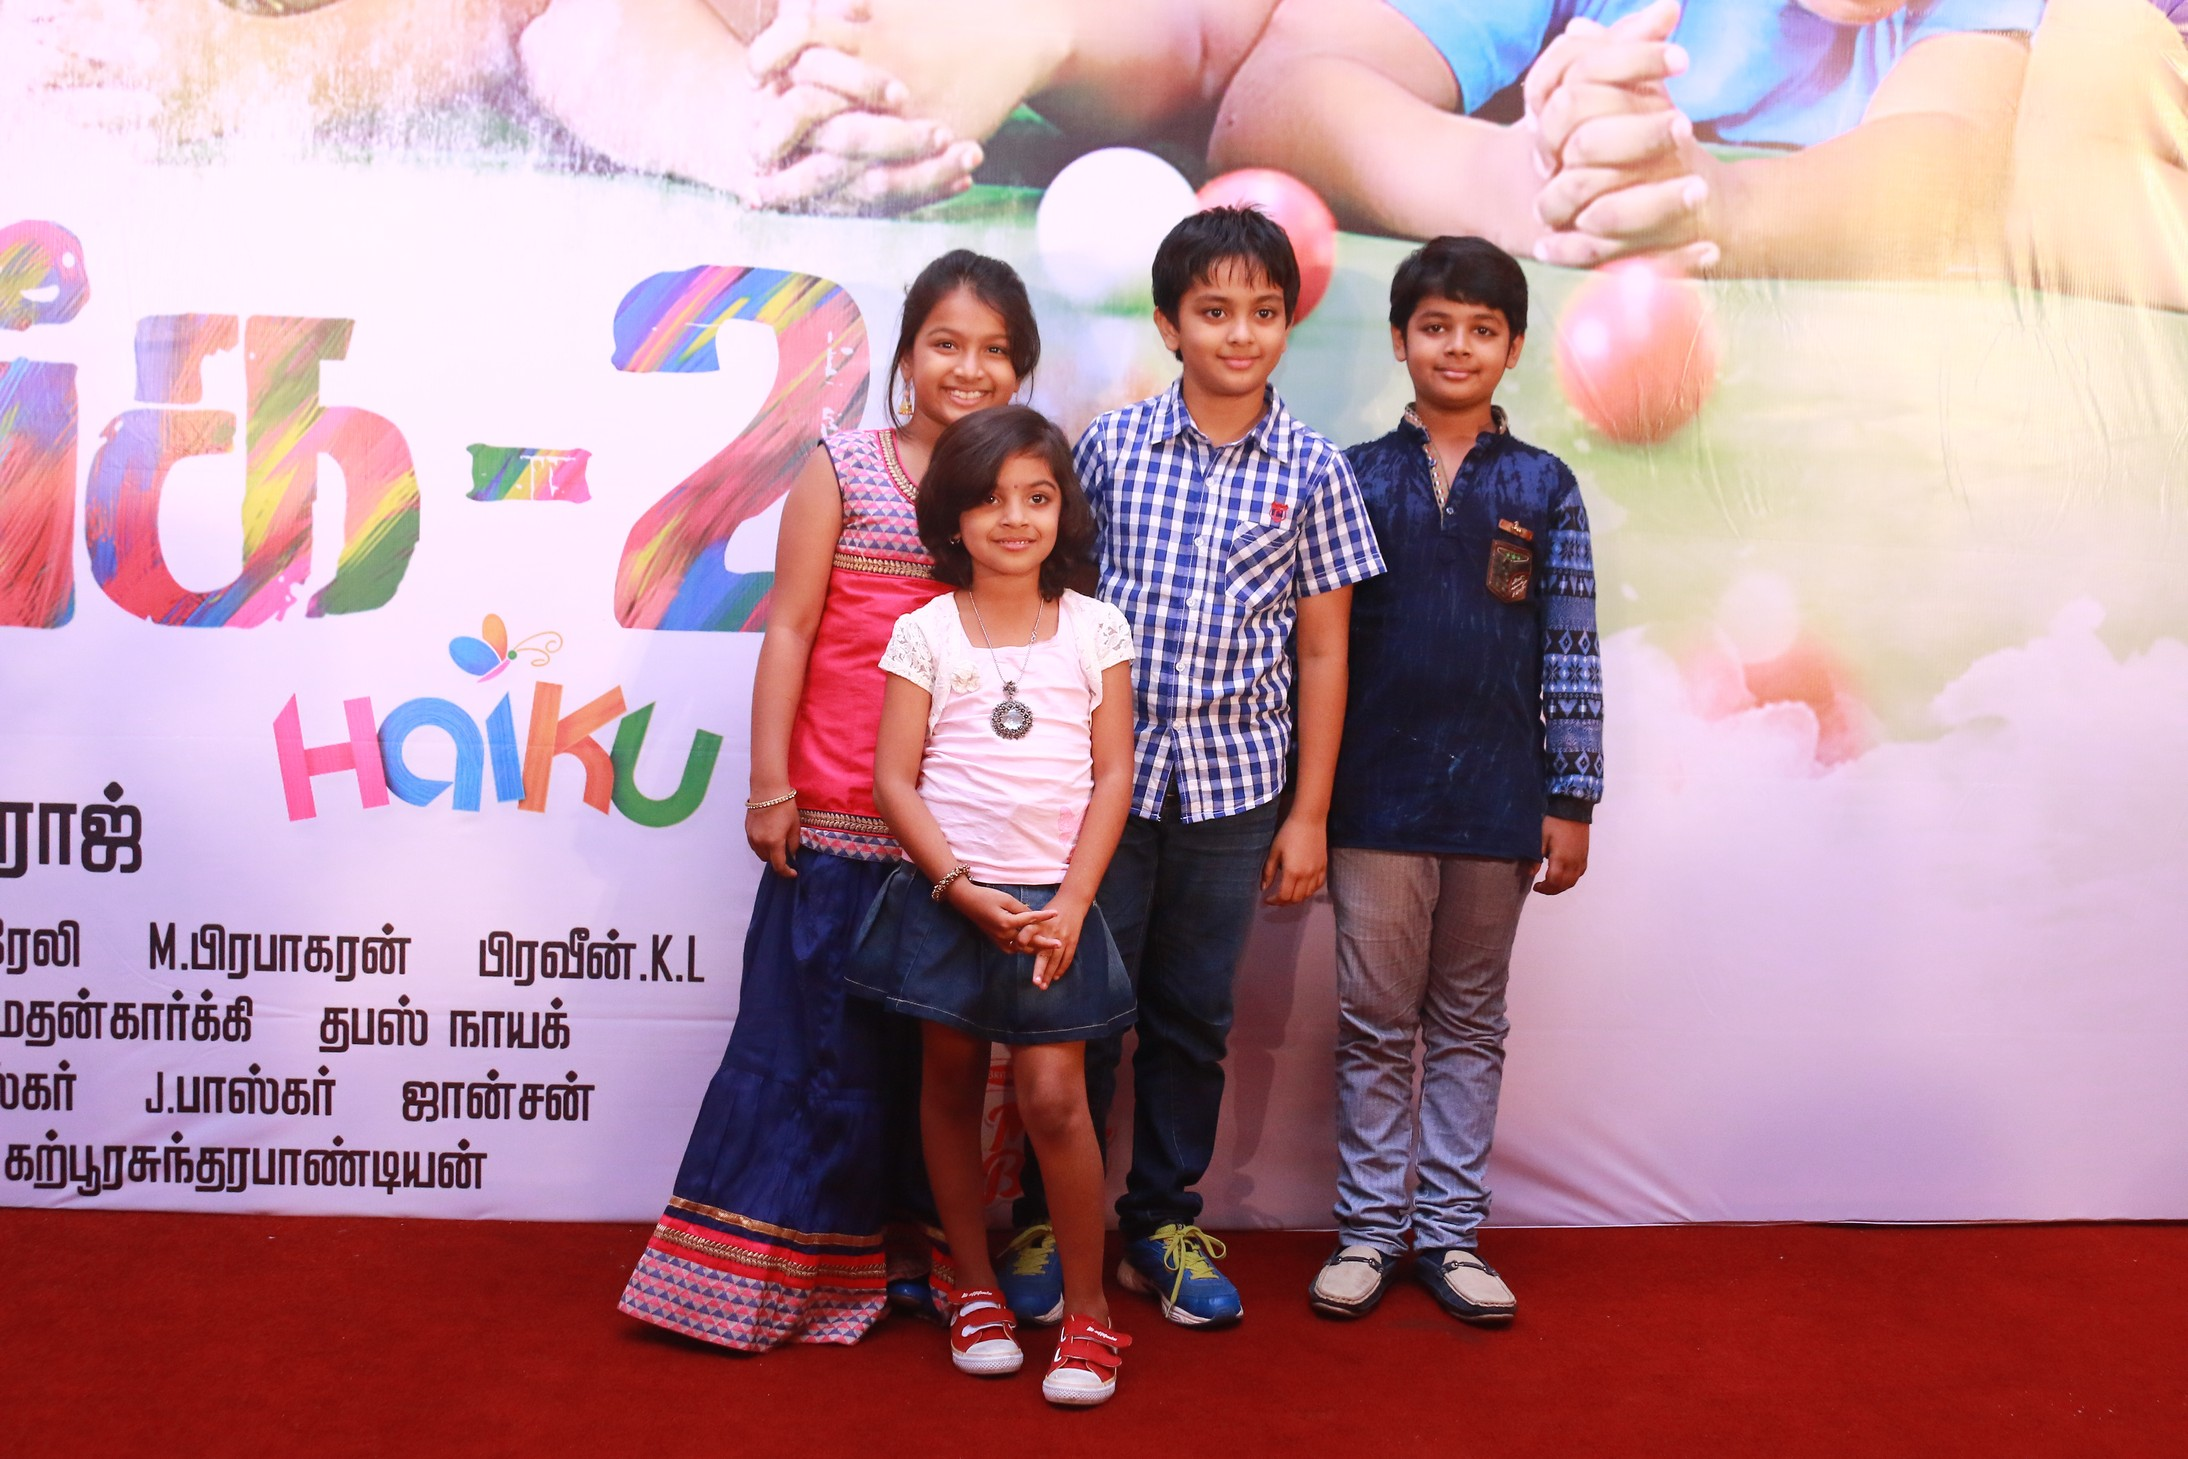 Pasanga 2 movie stills : Watch project runway allstars